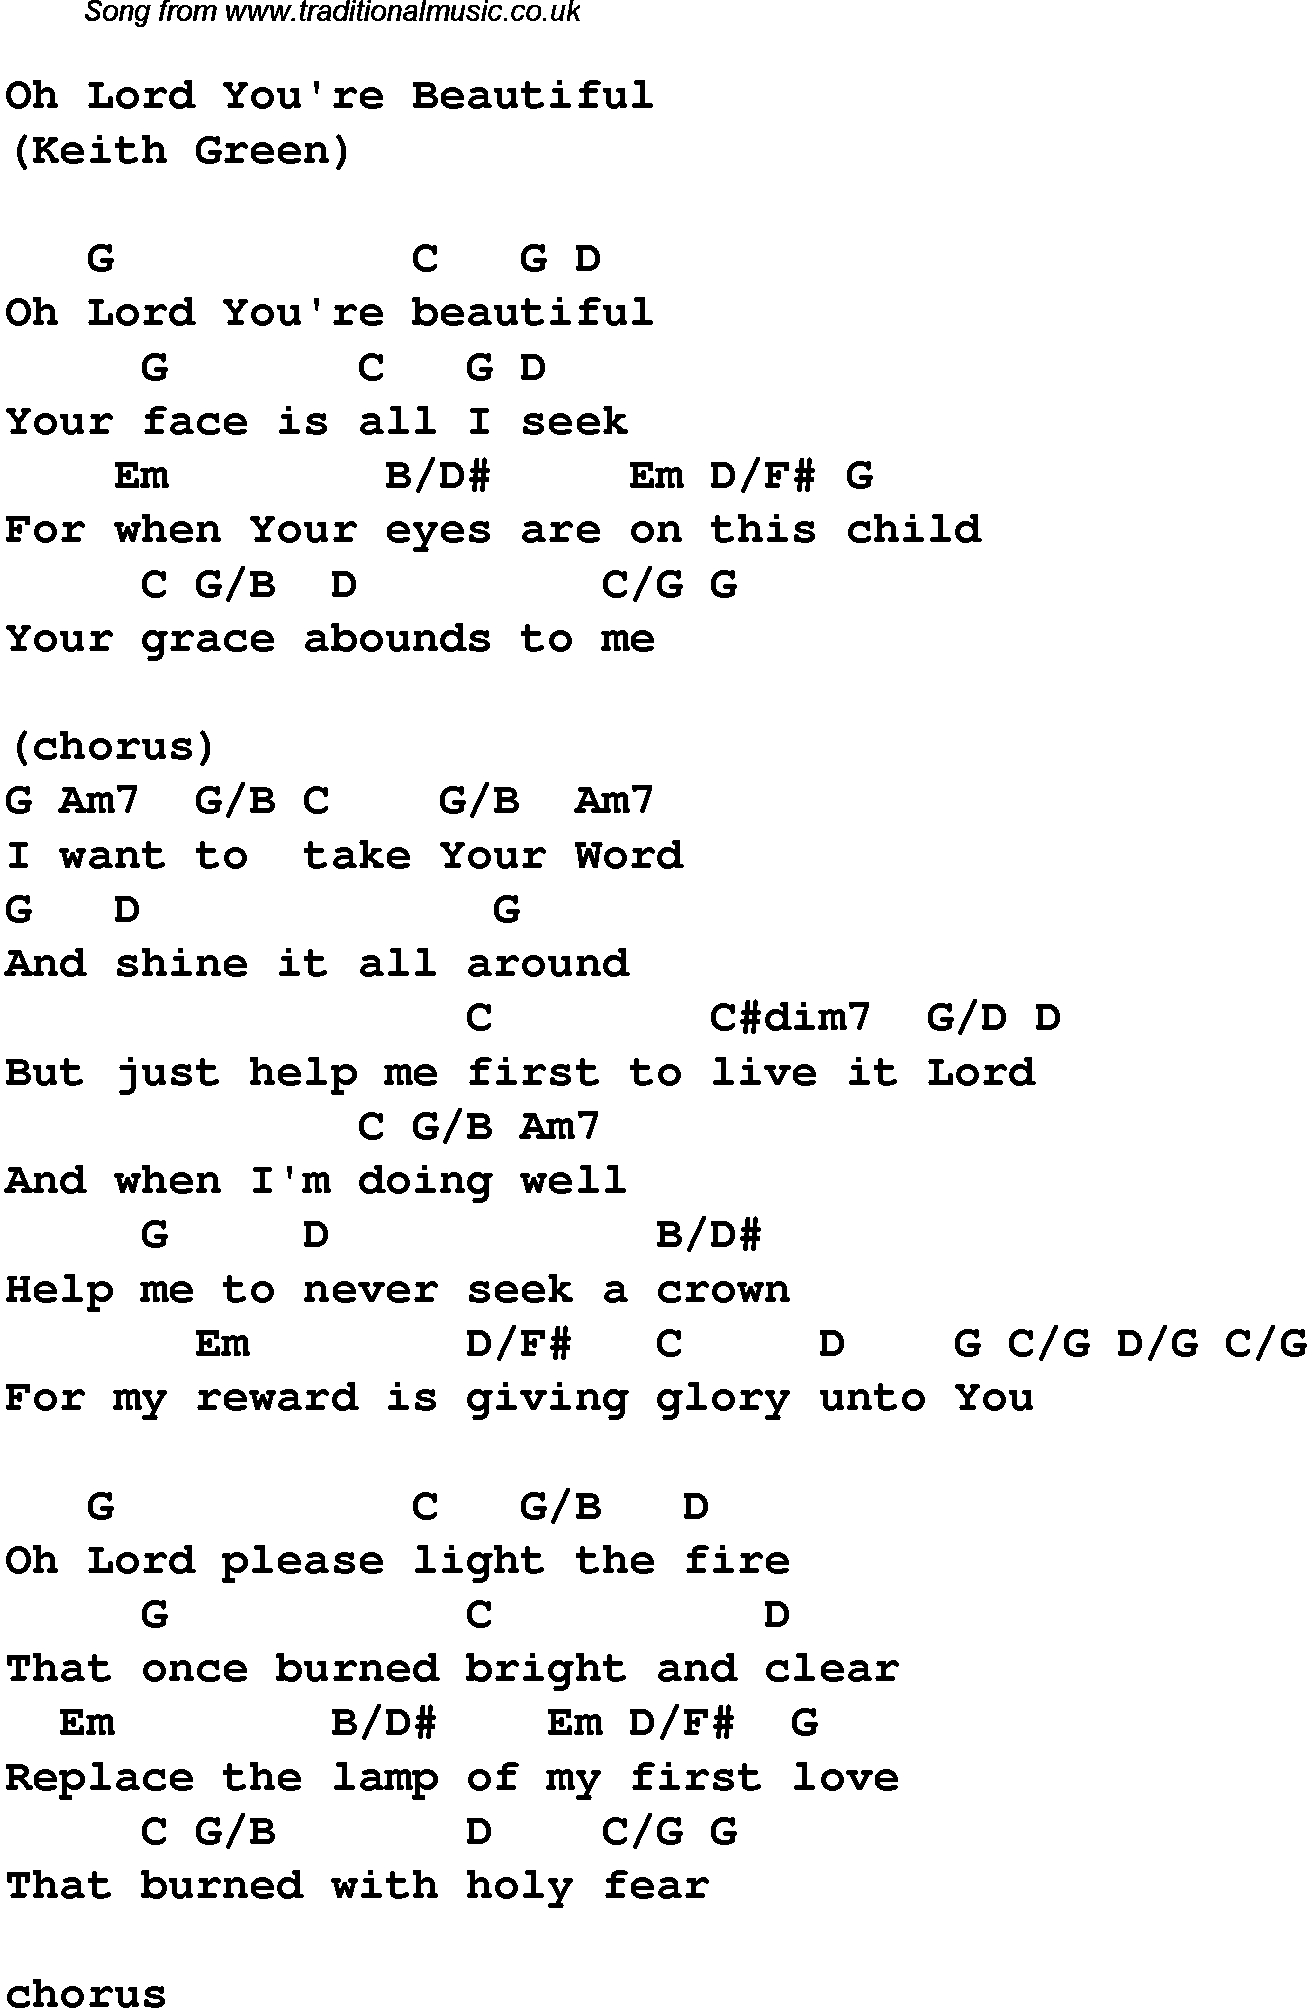 Christian Music Chords And Lyrics | Christian Music: Worship Song - Free Printable Lyrics To Christian Songs